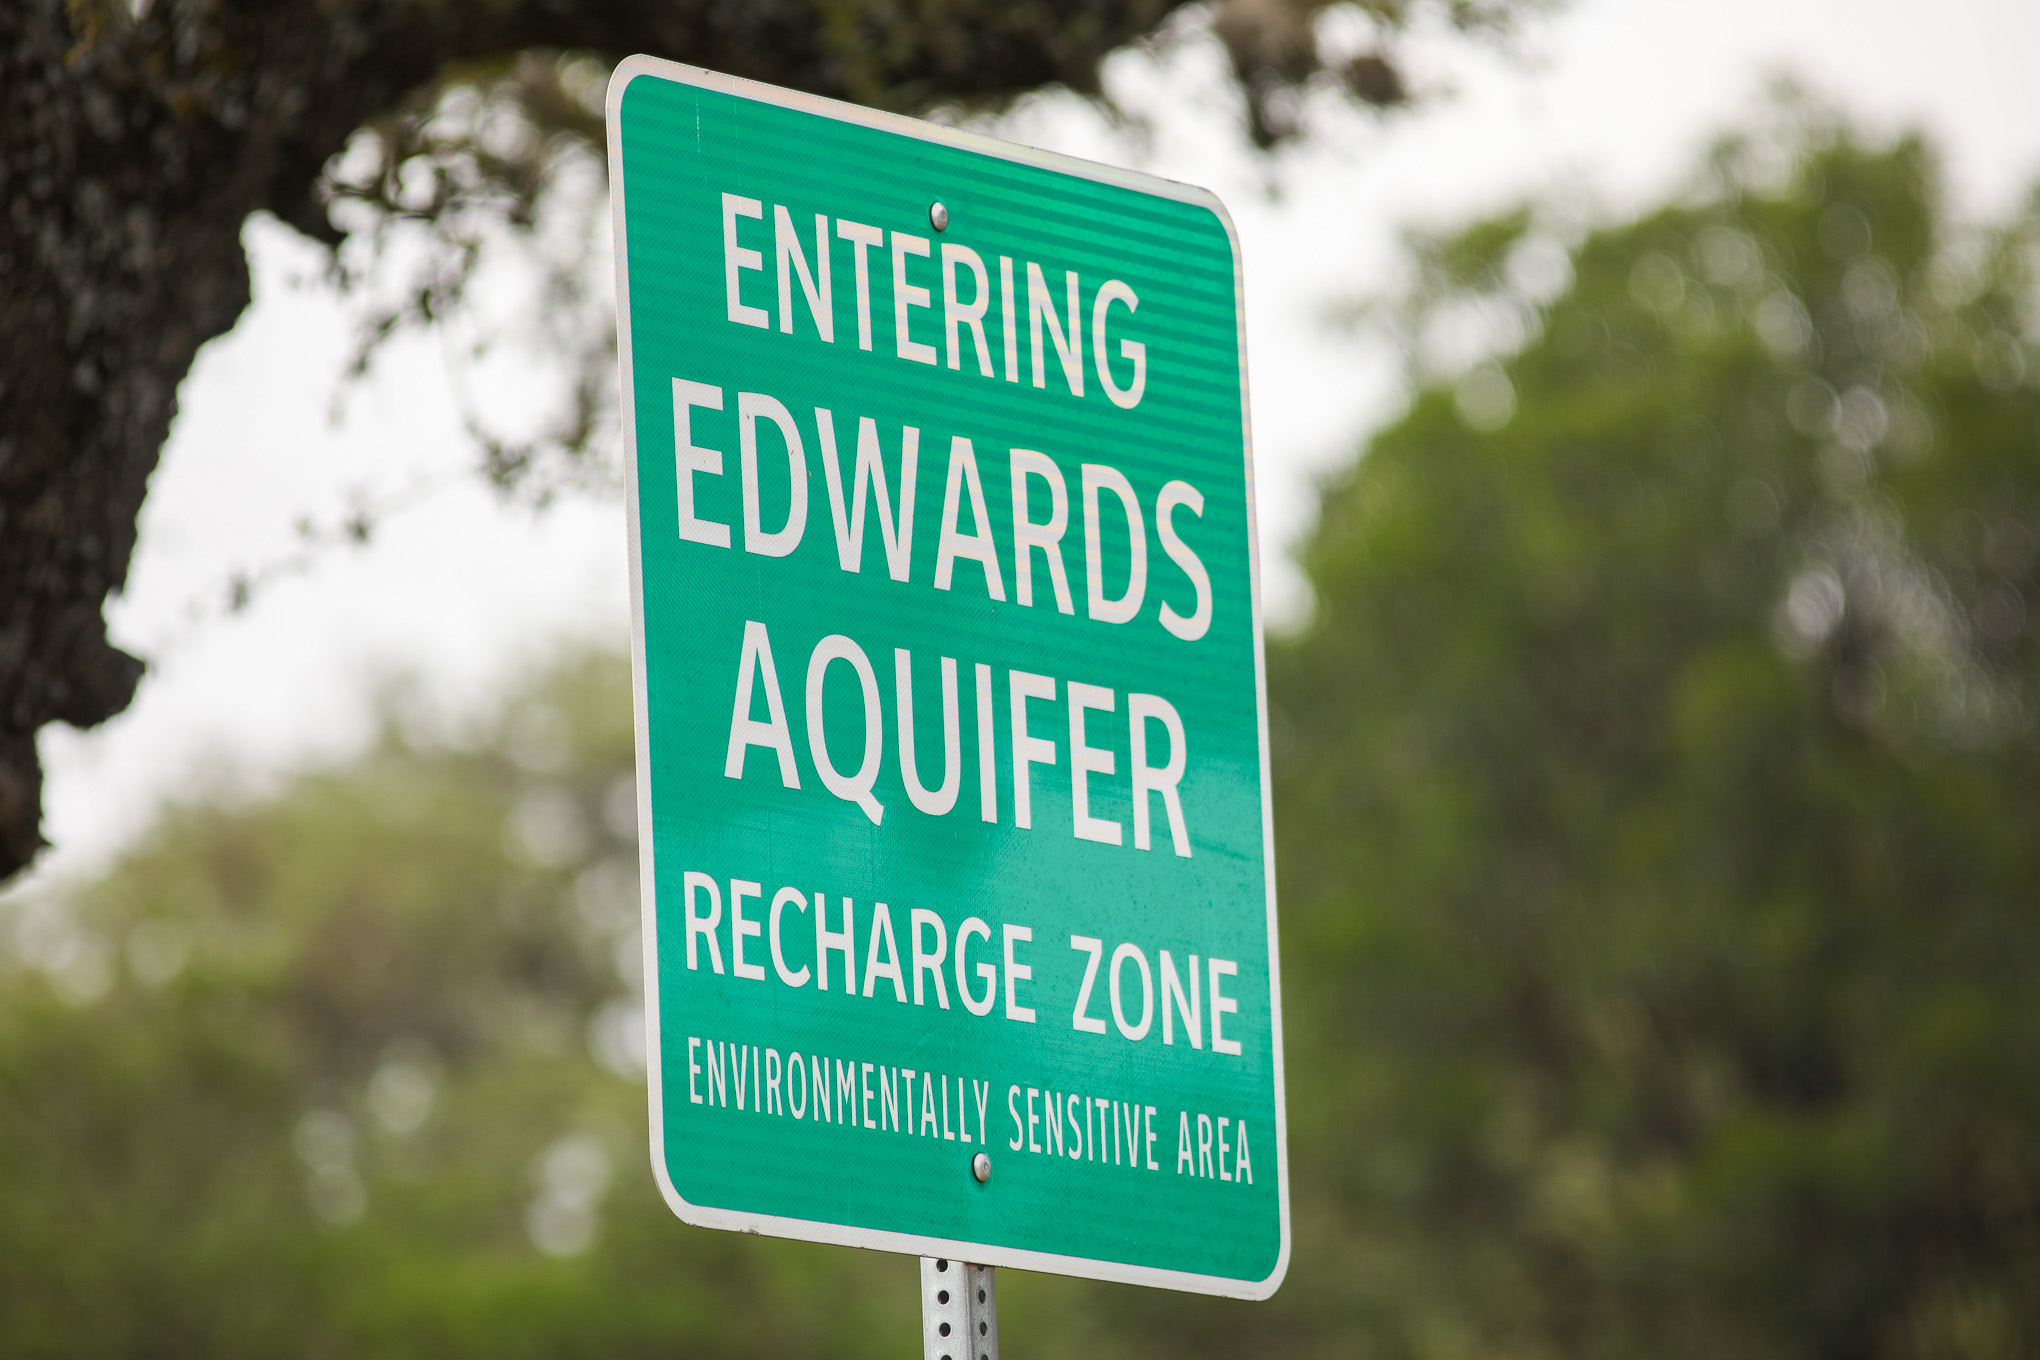 The Edwards Aquifer spans multiple counties and provides water to more than 2 million people.